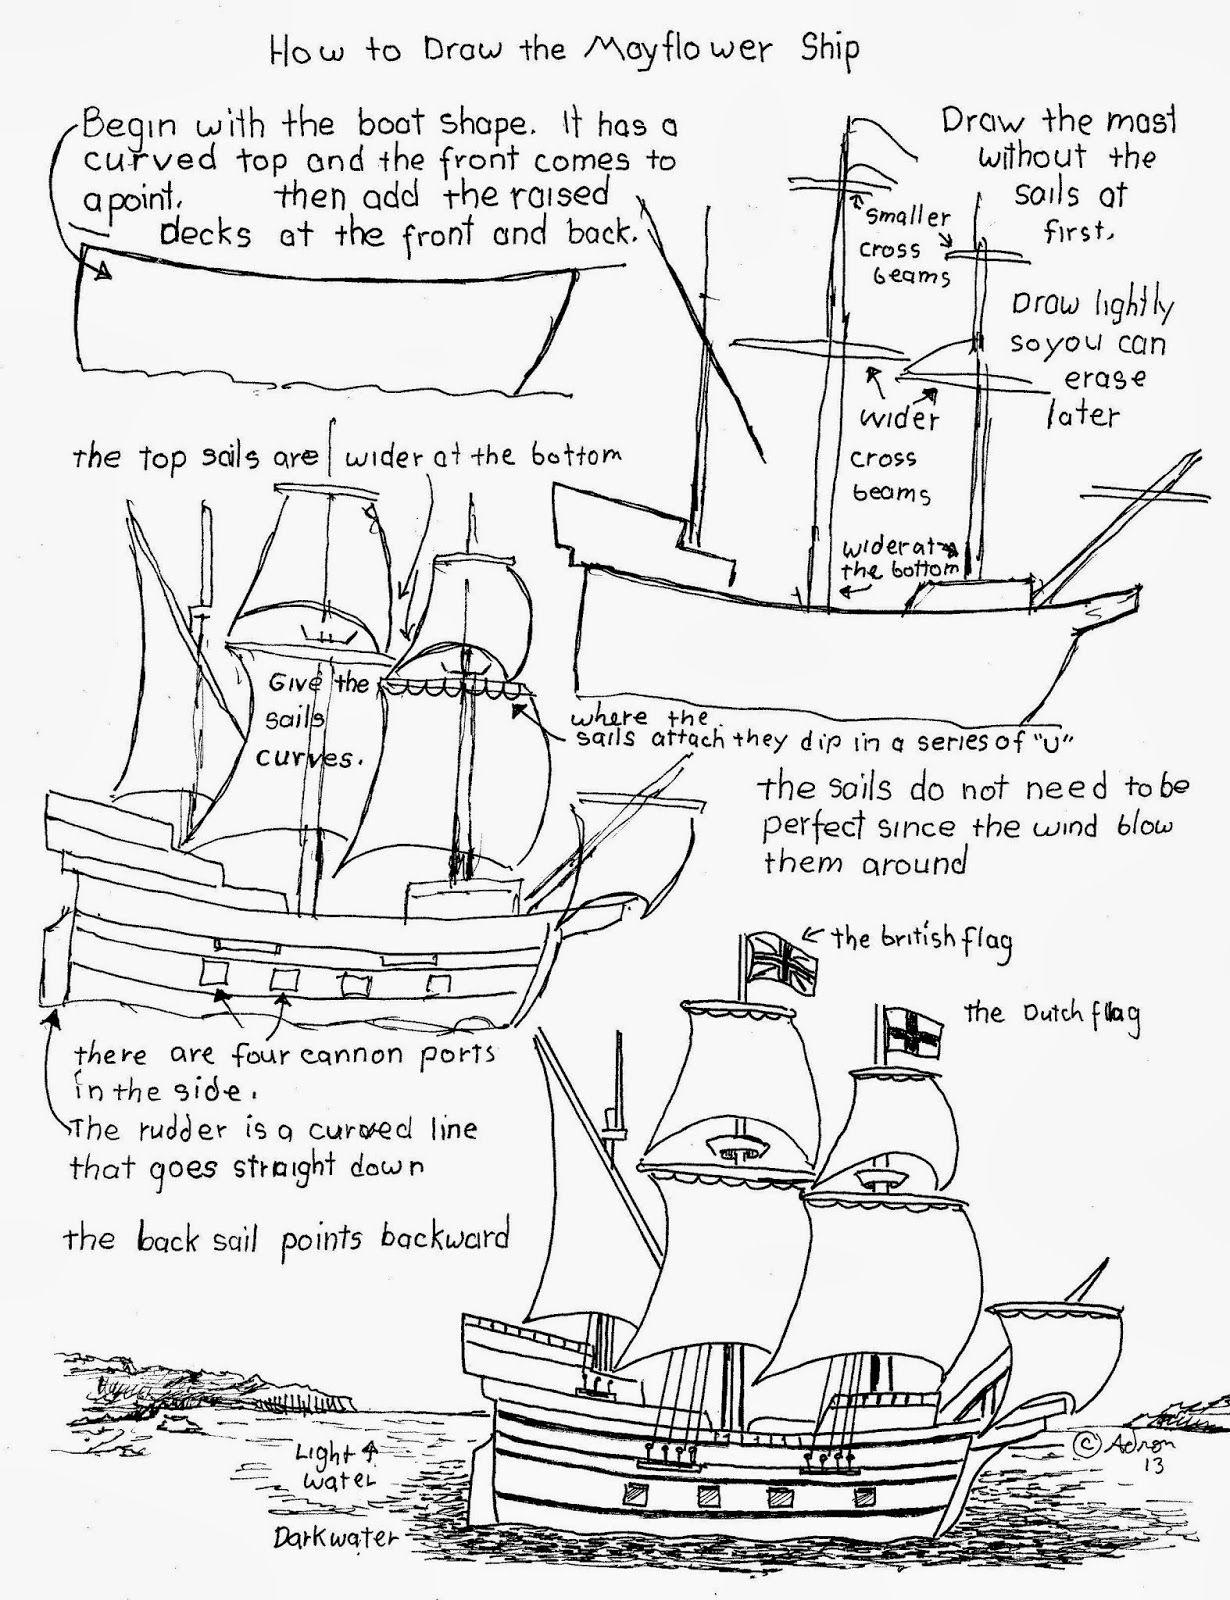 draw a block diagram of your ship's